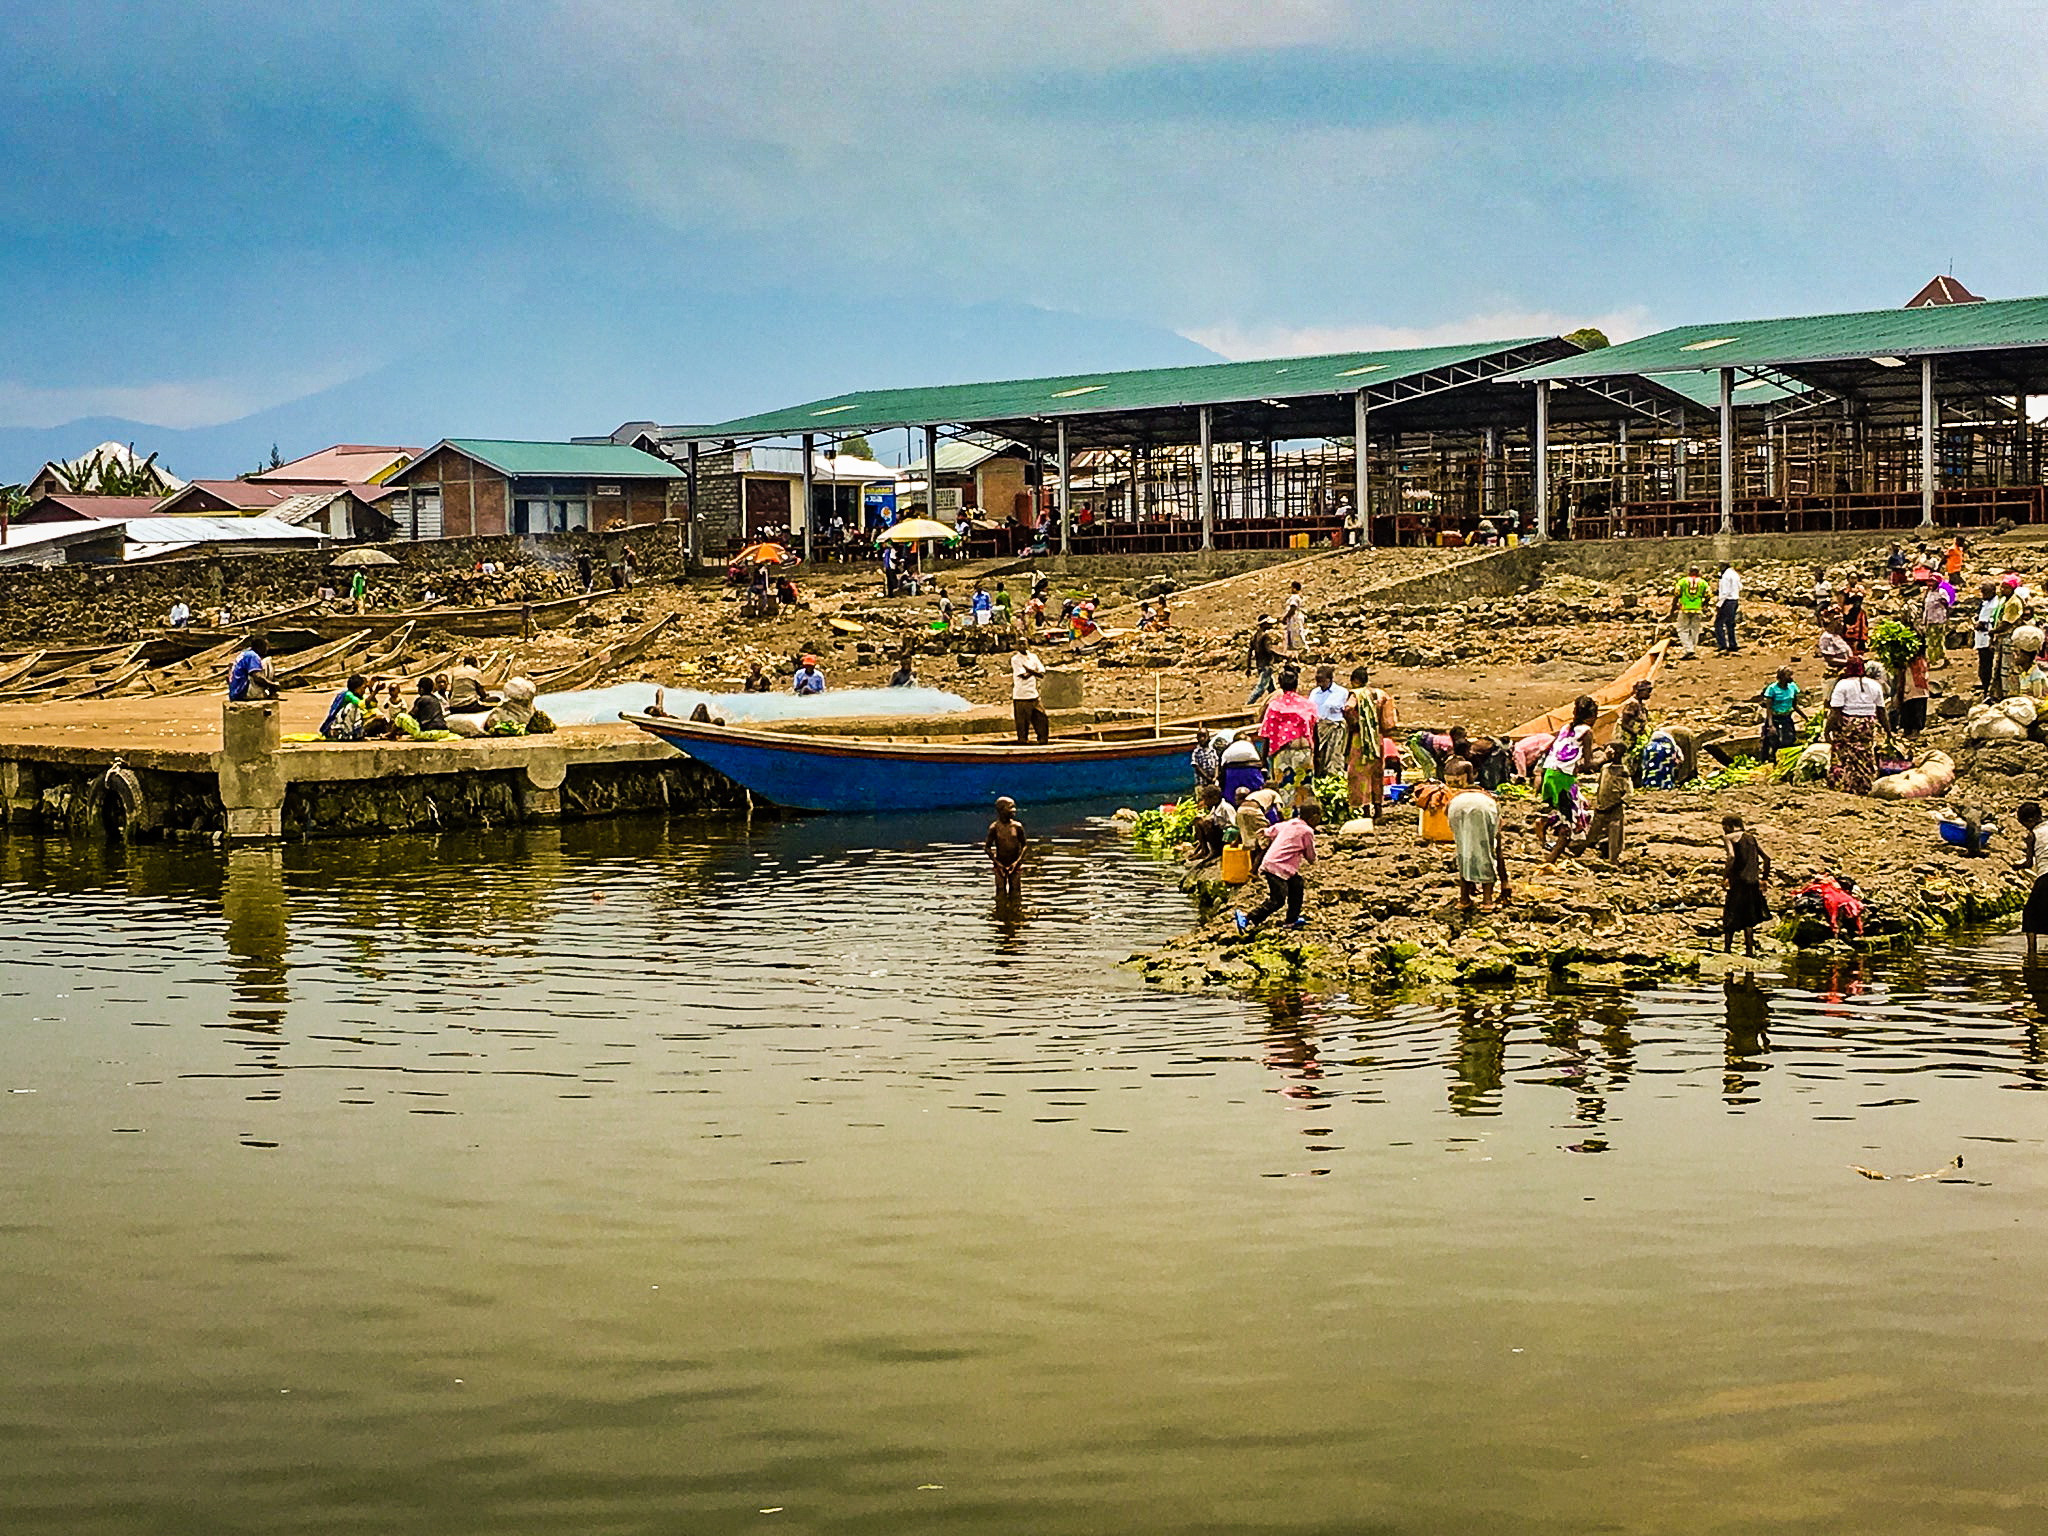 Lake Kivu. Where the locals go to fish, bathe, wash produce, and gather drinking water.